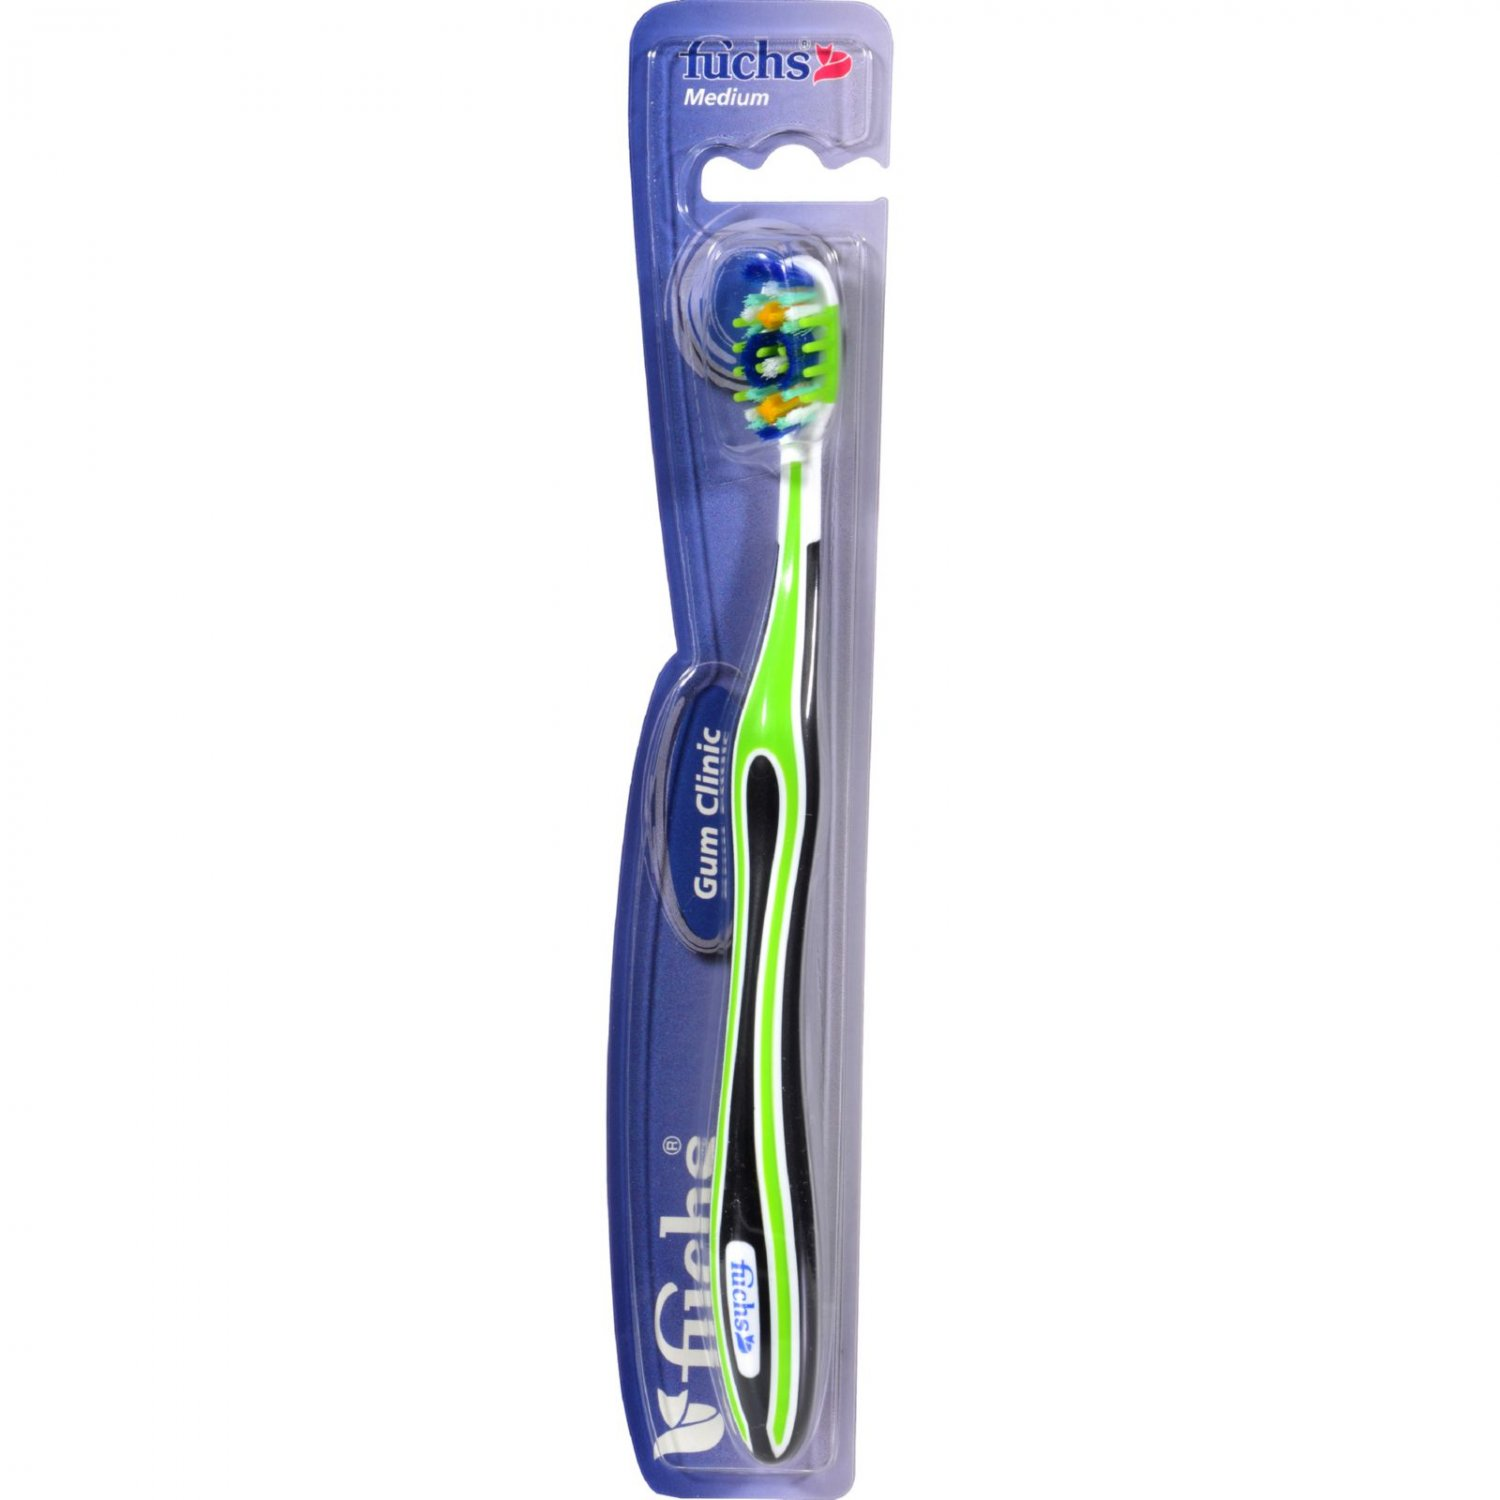 Fuchs Gum Clinic Toothbrush - Medium - Case of 10